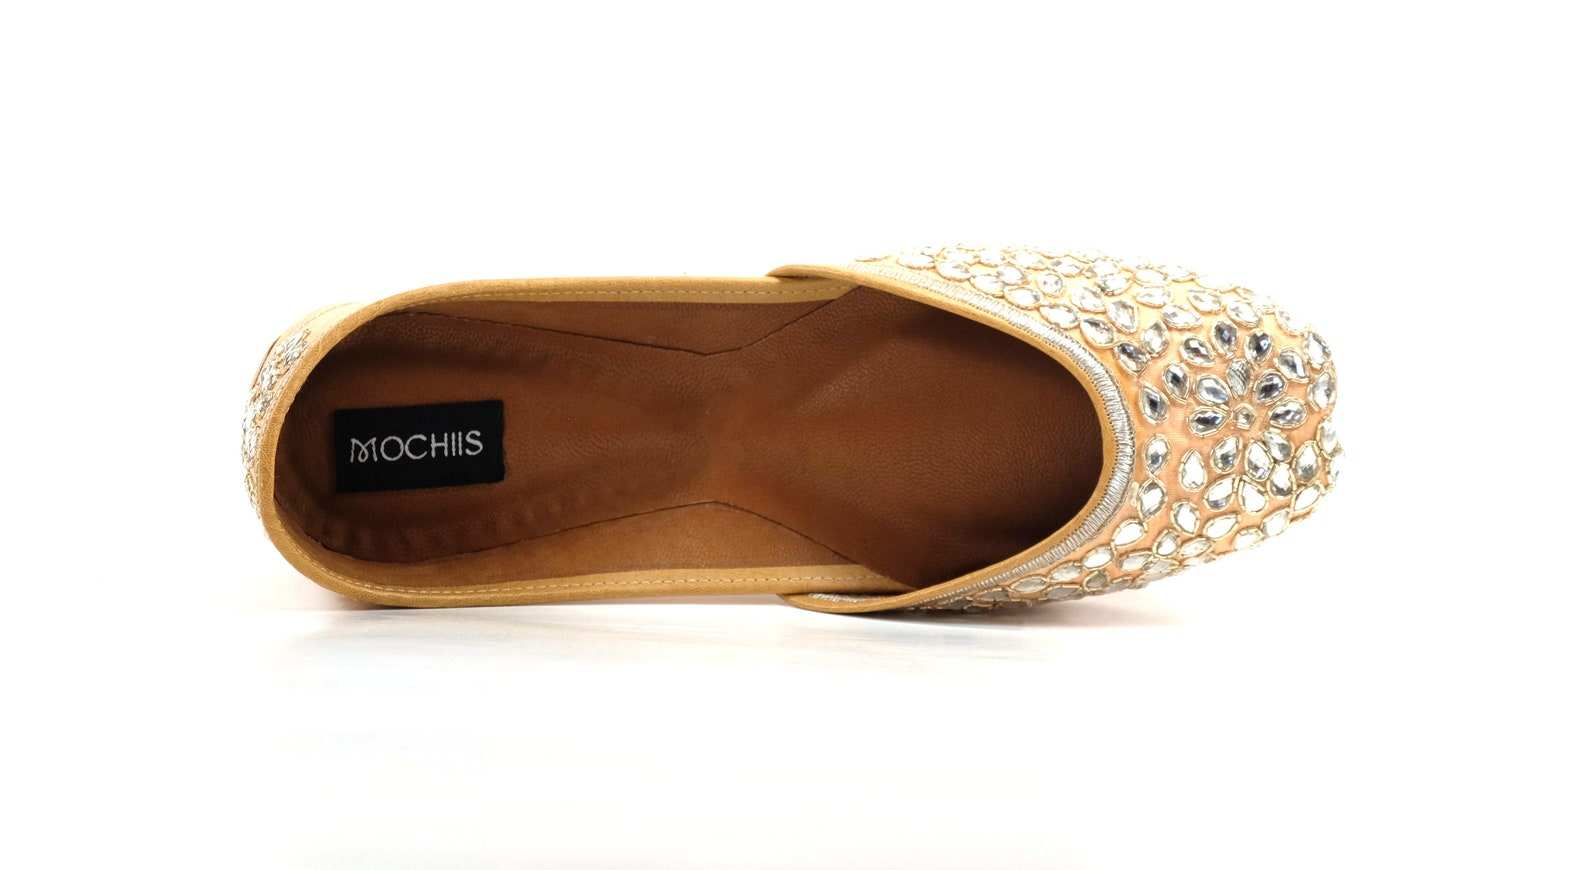 solitaire - handmade embroidered leather ballet flats - kundan juttis - traditional jutti / mojari / khussa with a contemporary